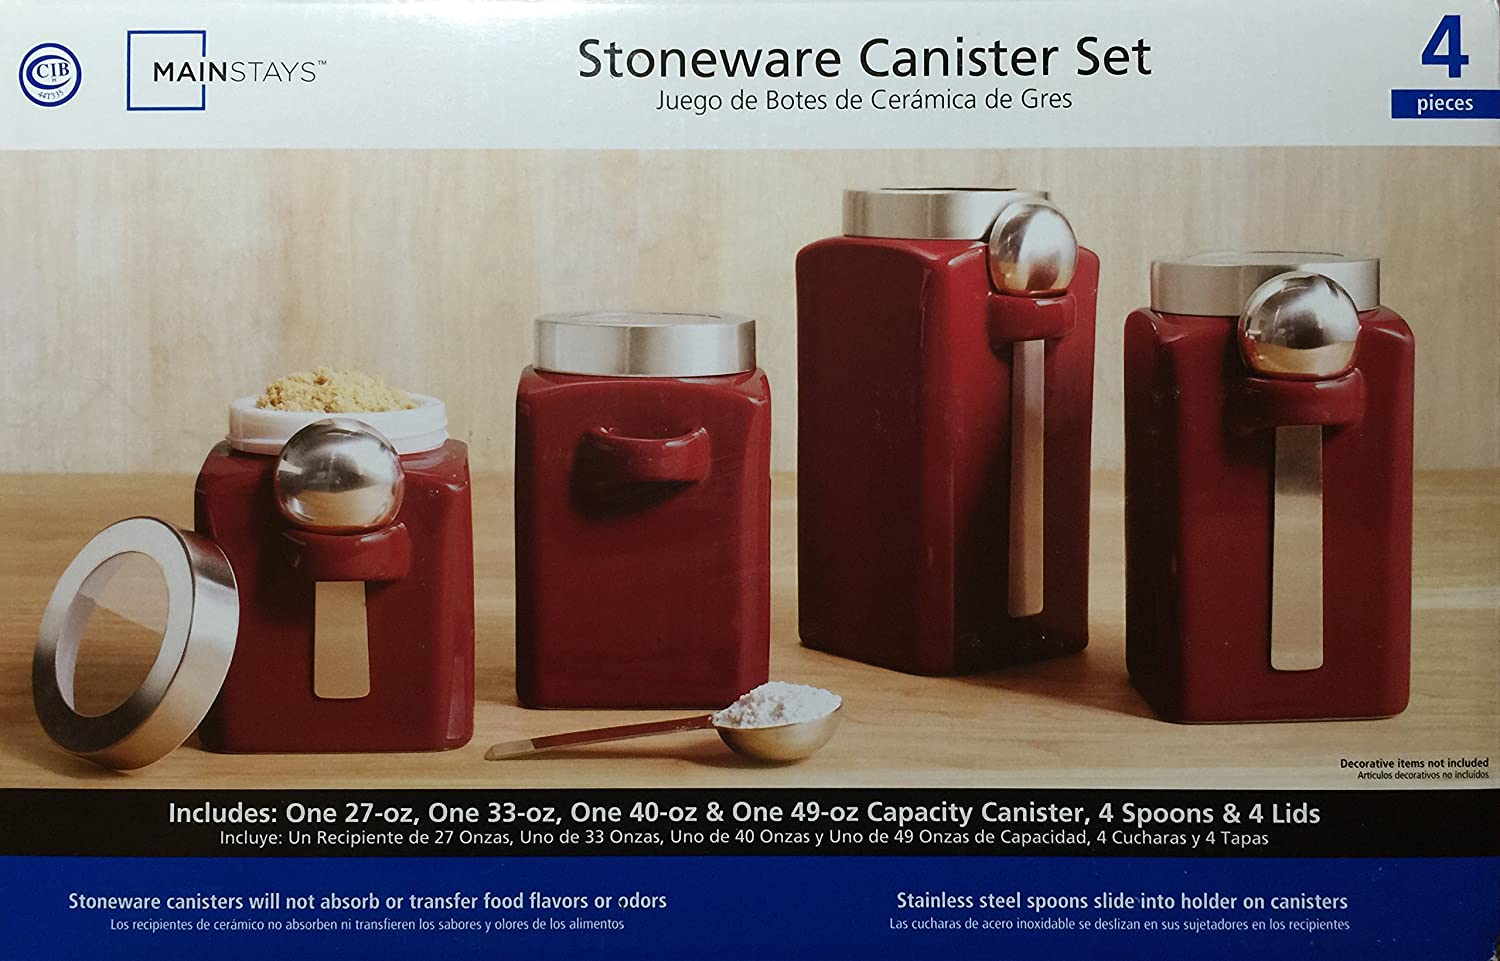 Amazon.com: Mainstays Red Stonewear Kitchen Canister Set, 4pc: Home & Kitchen